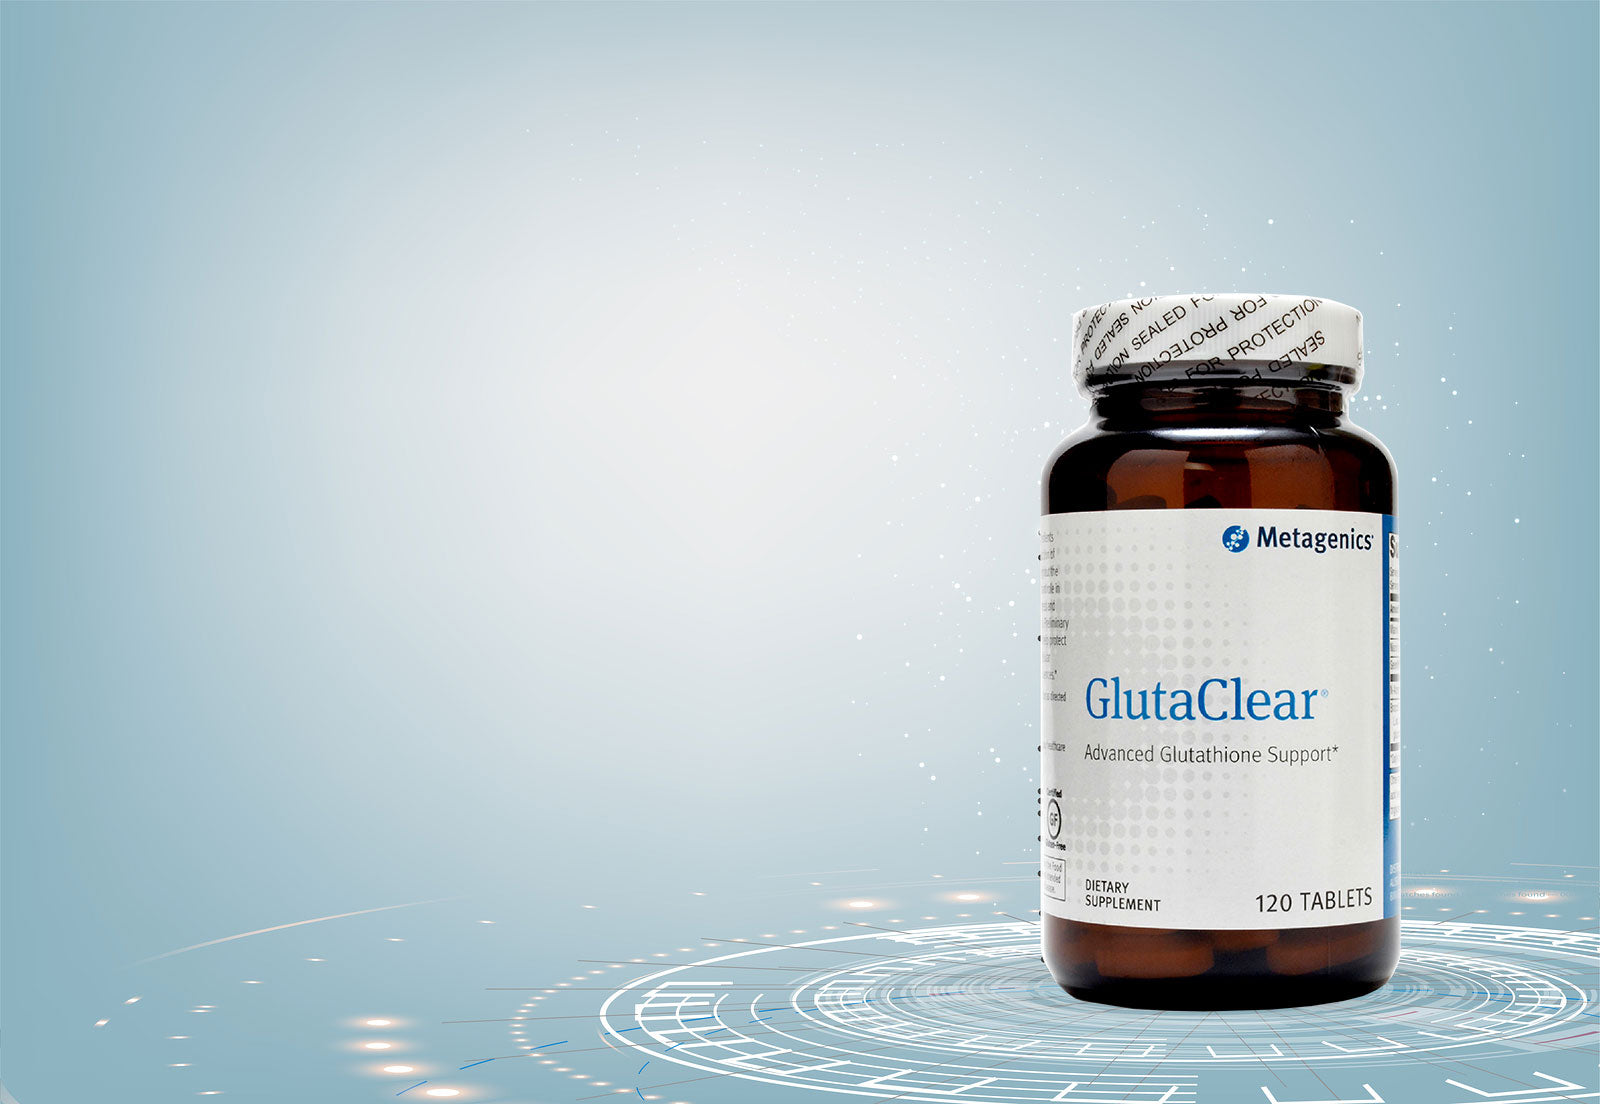 New Product: GlutaClear by Metagenics